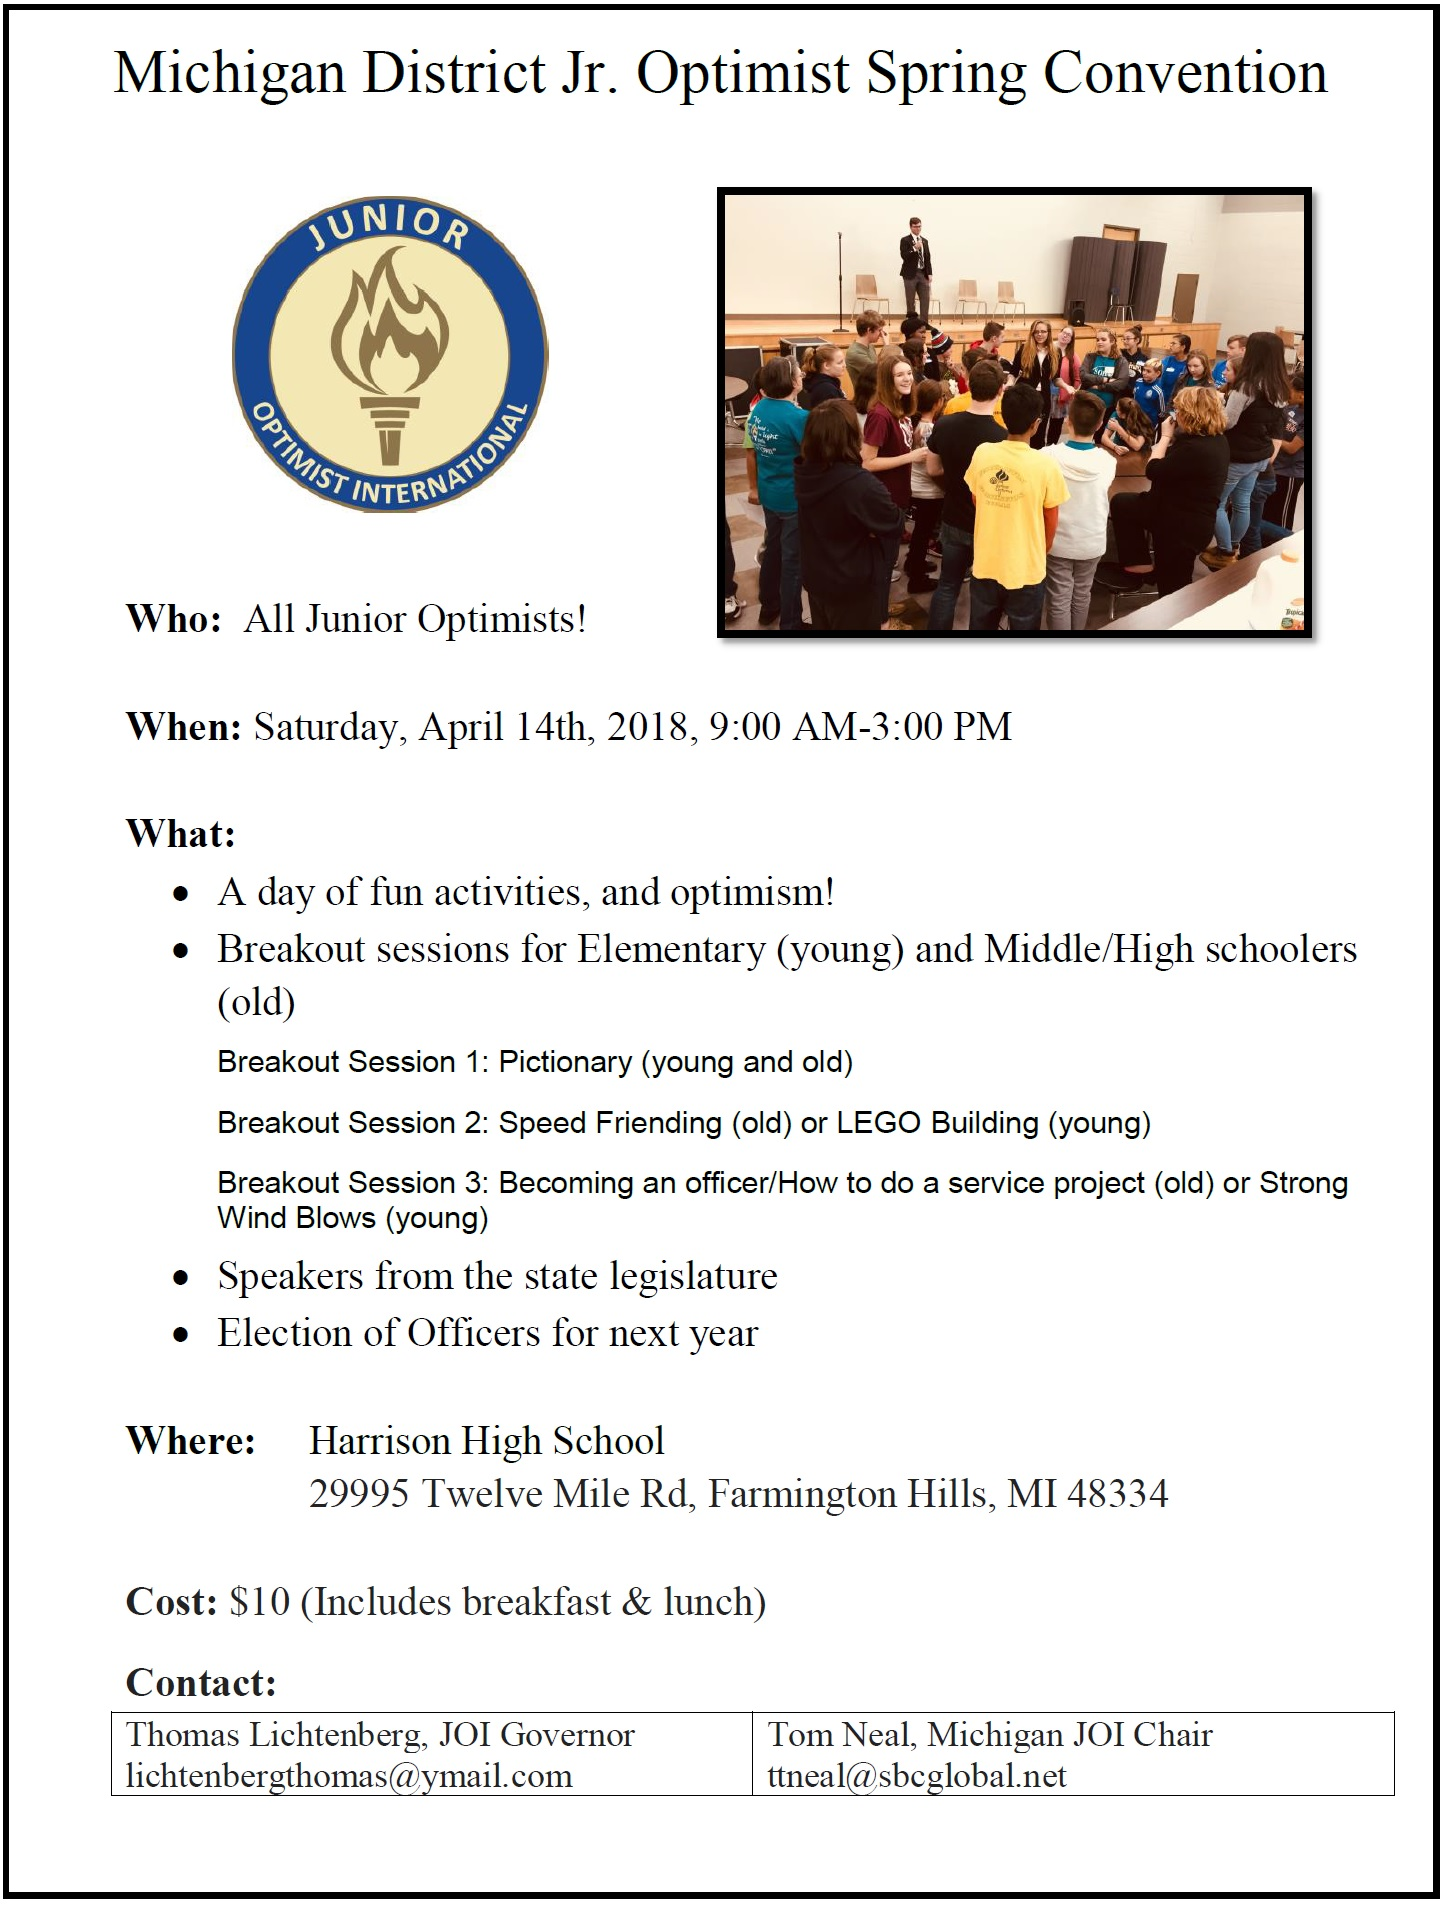 Michigan District Junior Optimist Spring Convention